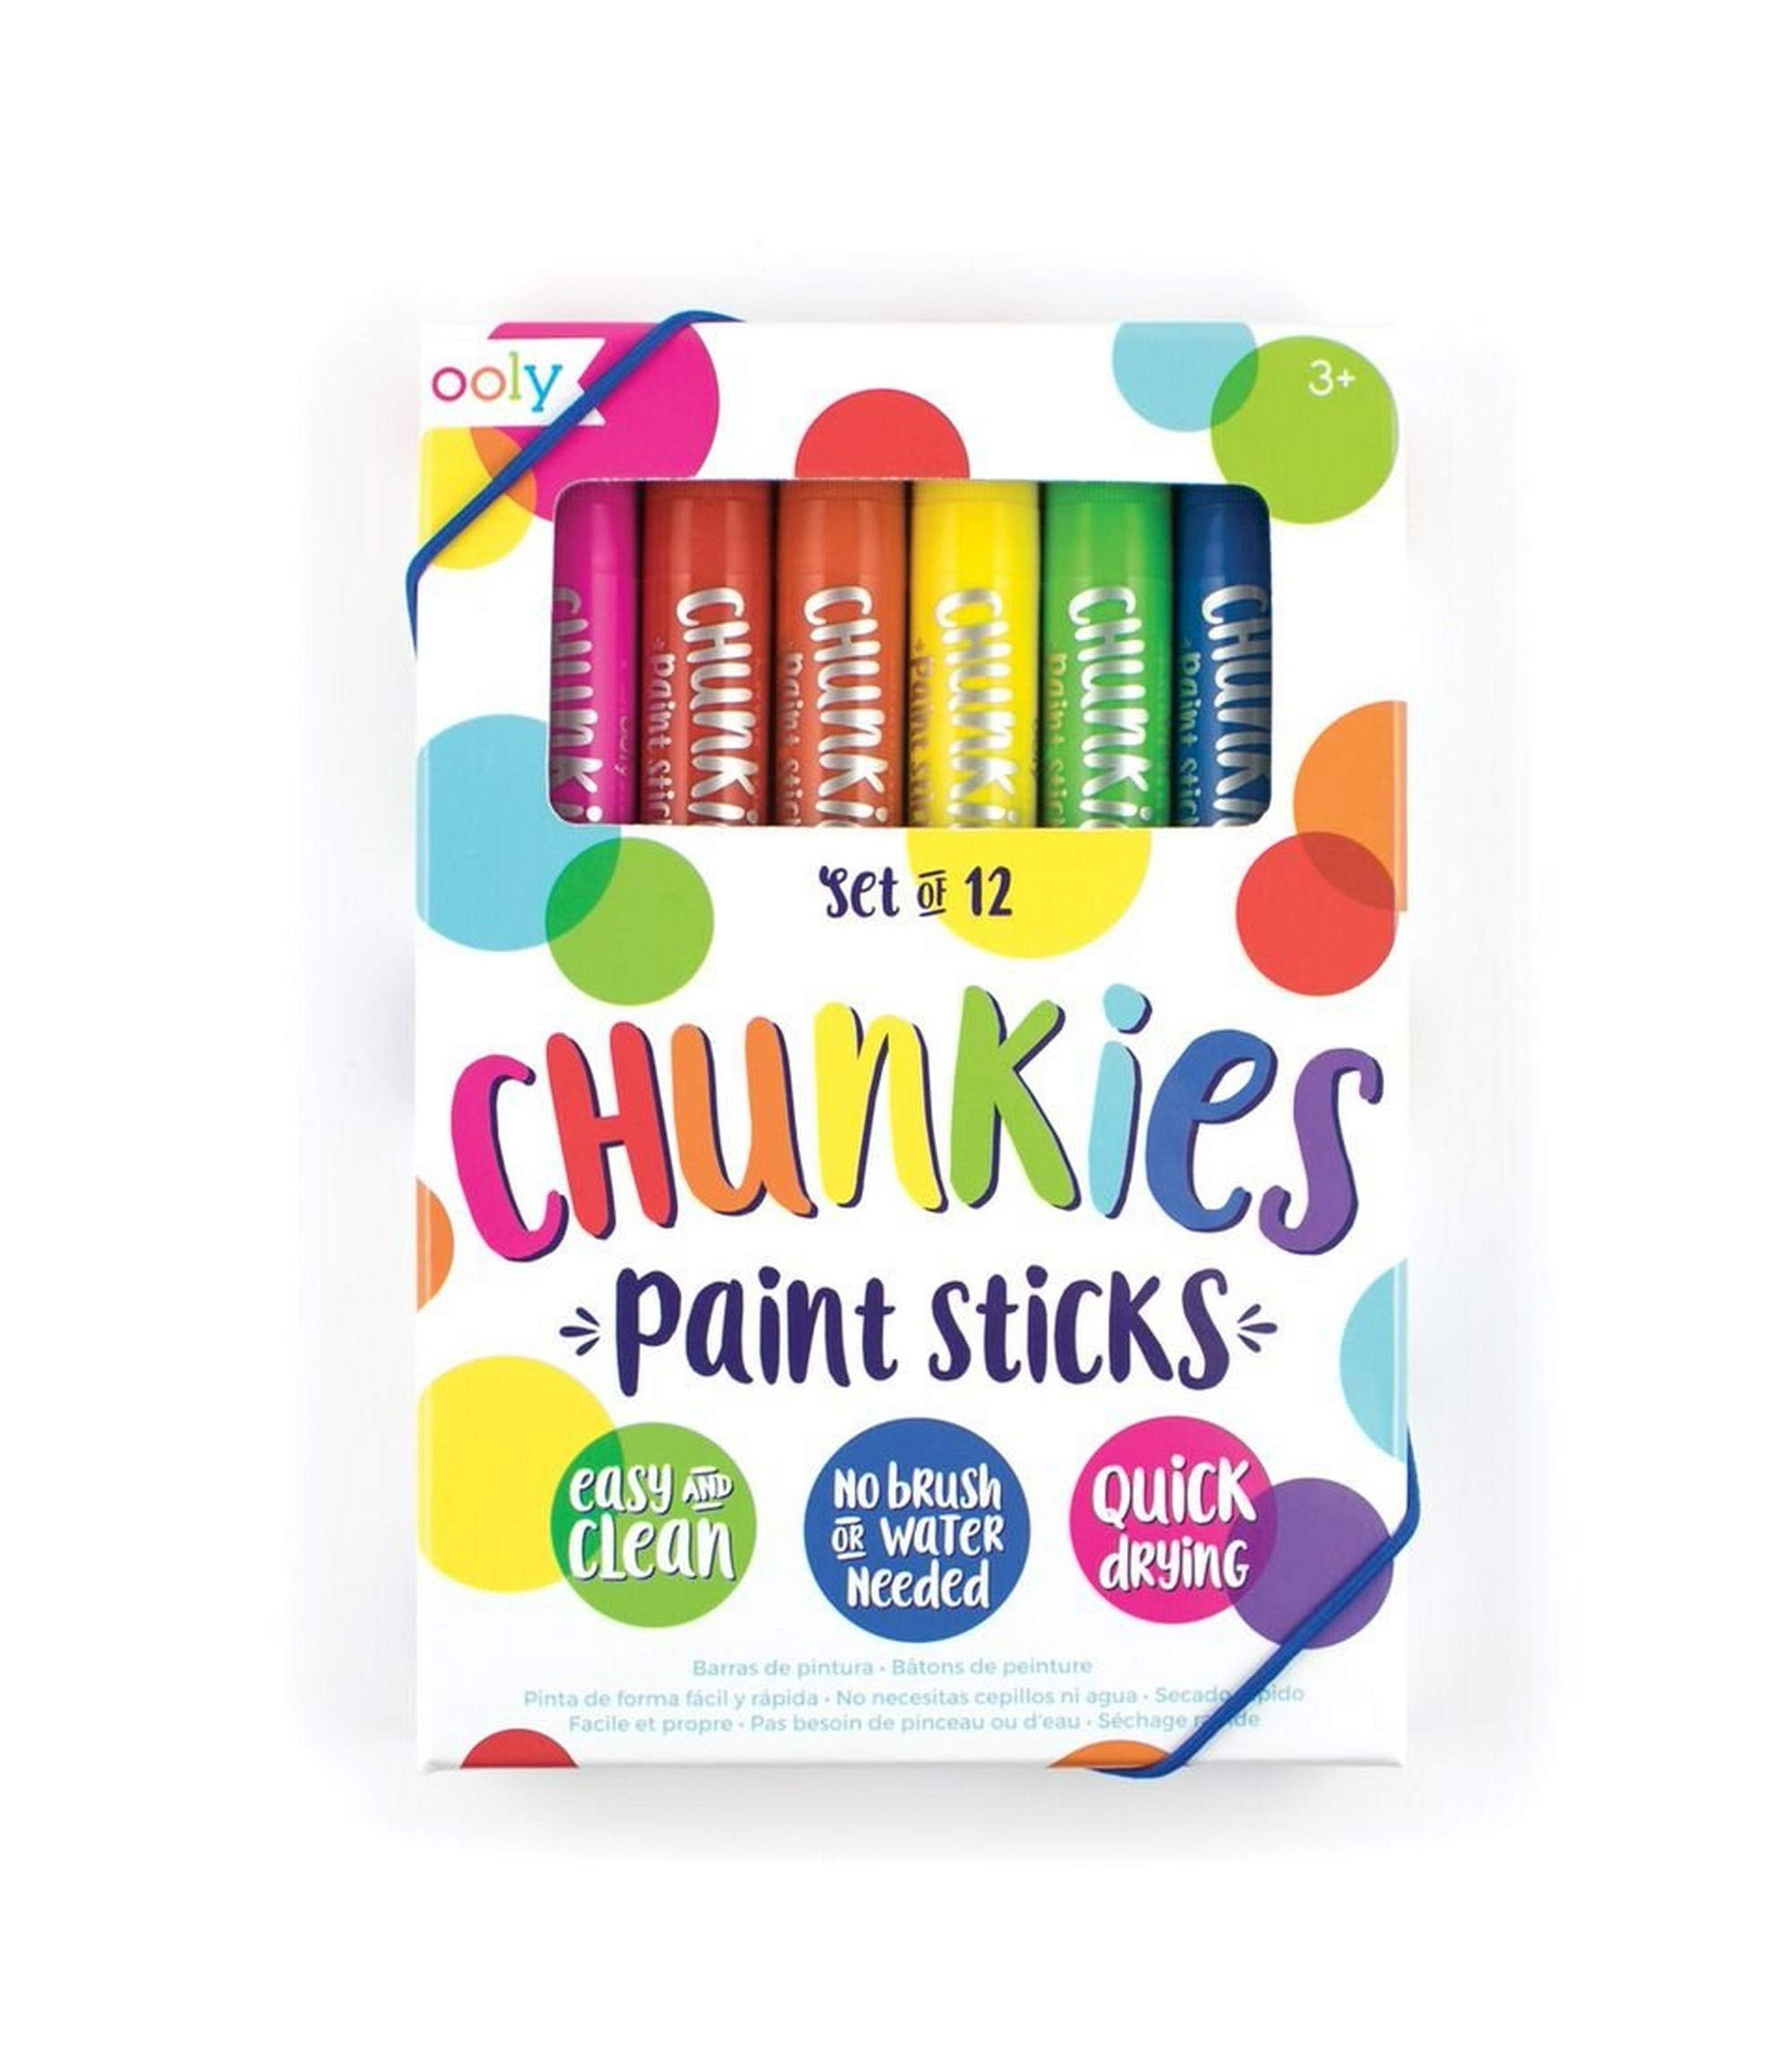 OOLY, Giftable Chunkies Paint Sticks, No Brush or Water Needed - Set of 12